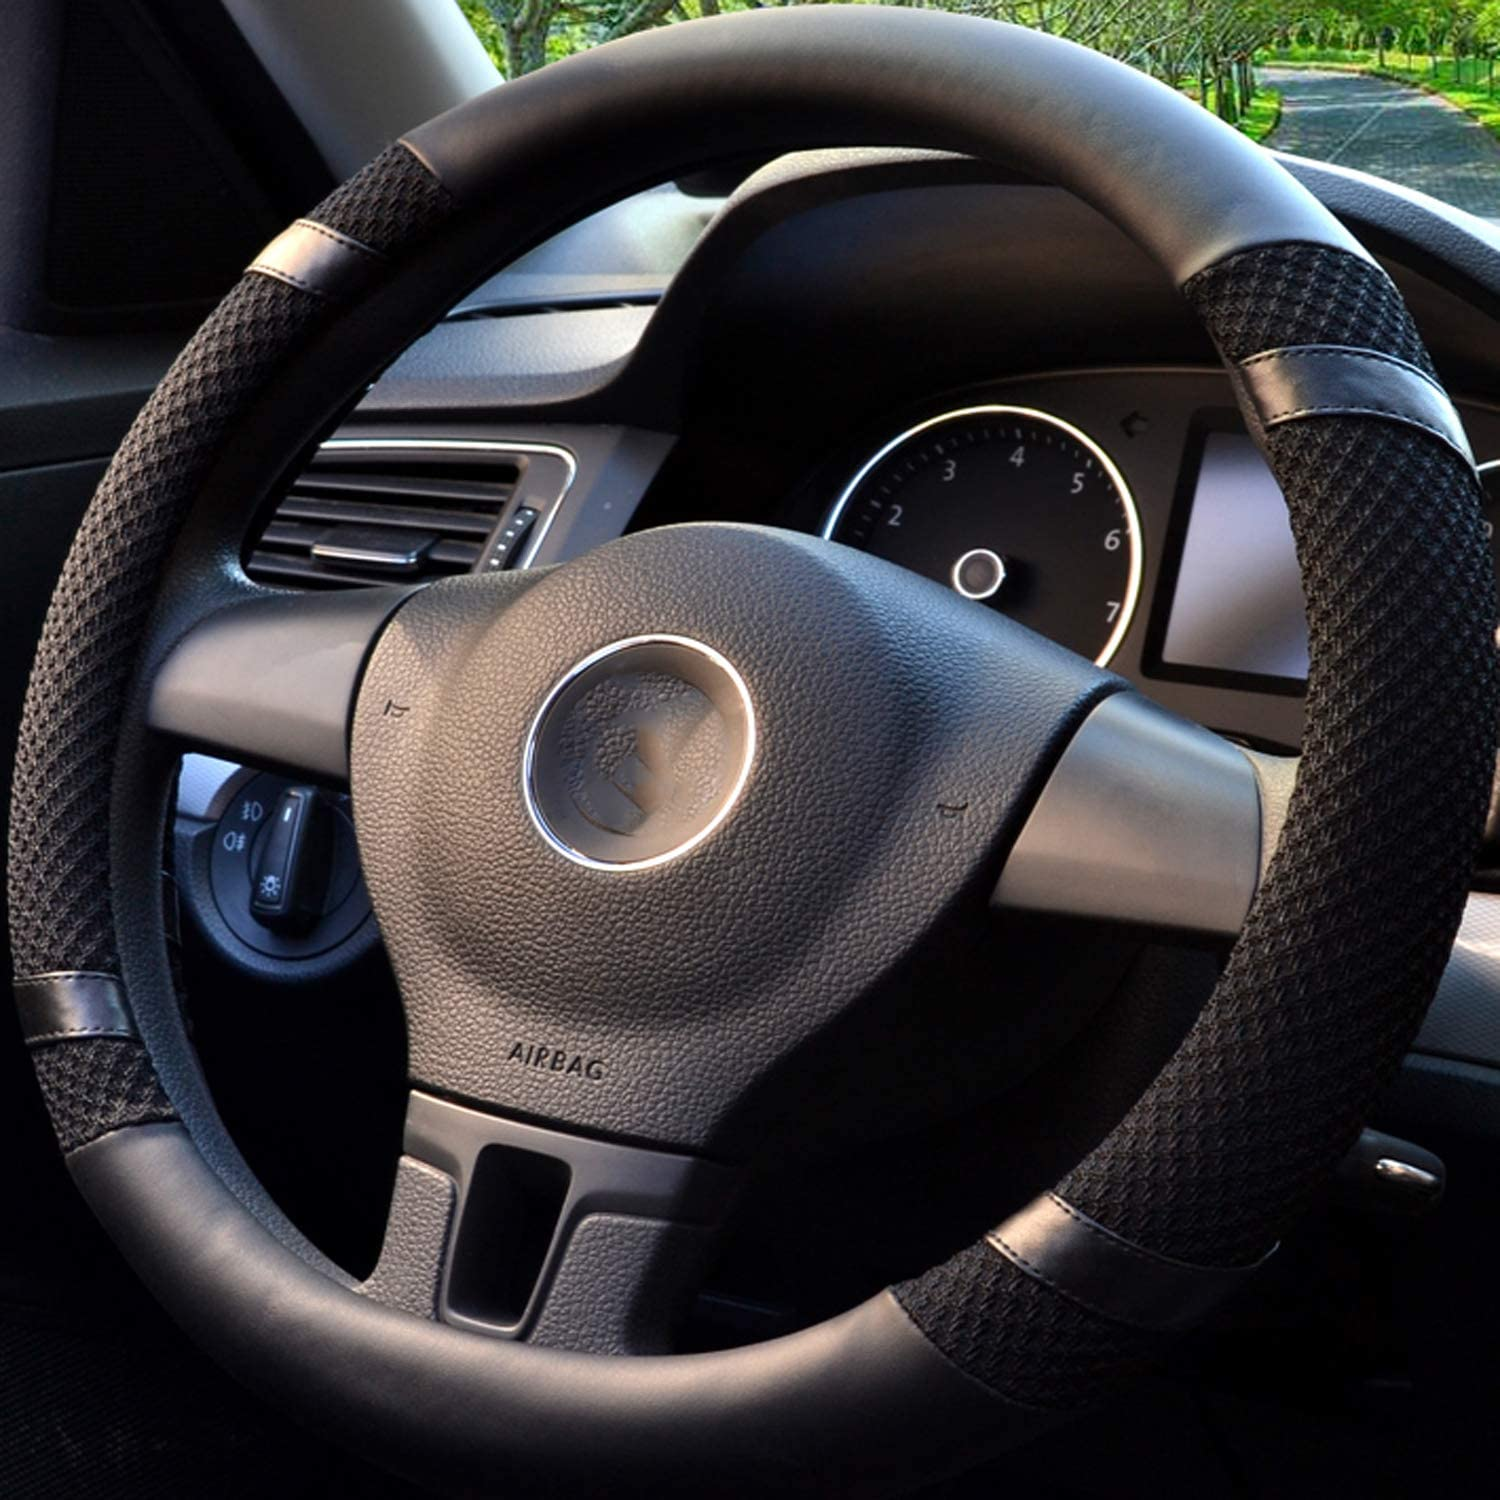 Steering Wheel Cover, Black Microfiber Leather and Viscose Auto Car Steering Wheel Covers, Ice Silk Breathable, Anti-Slip, Odorless, Warm in Winter and Cool in Summer. (Universal 15 Inches)